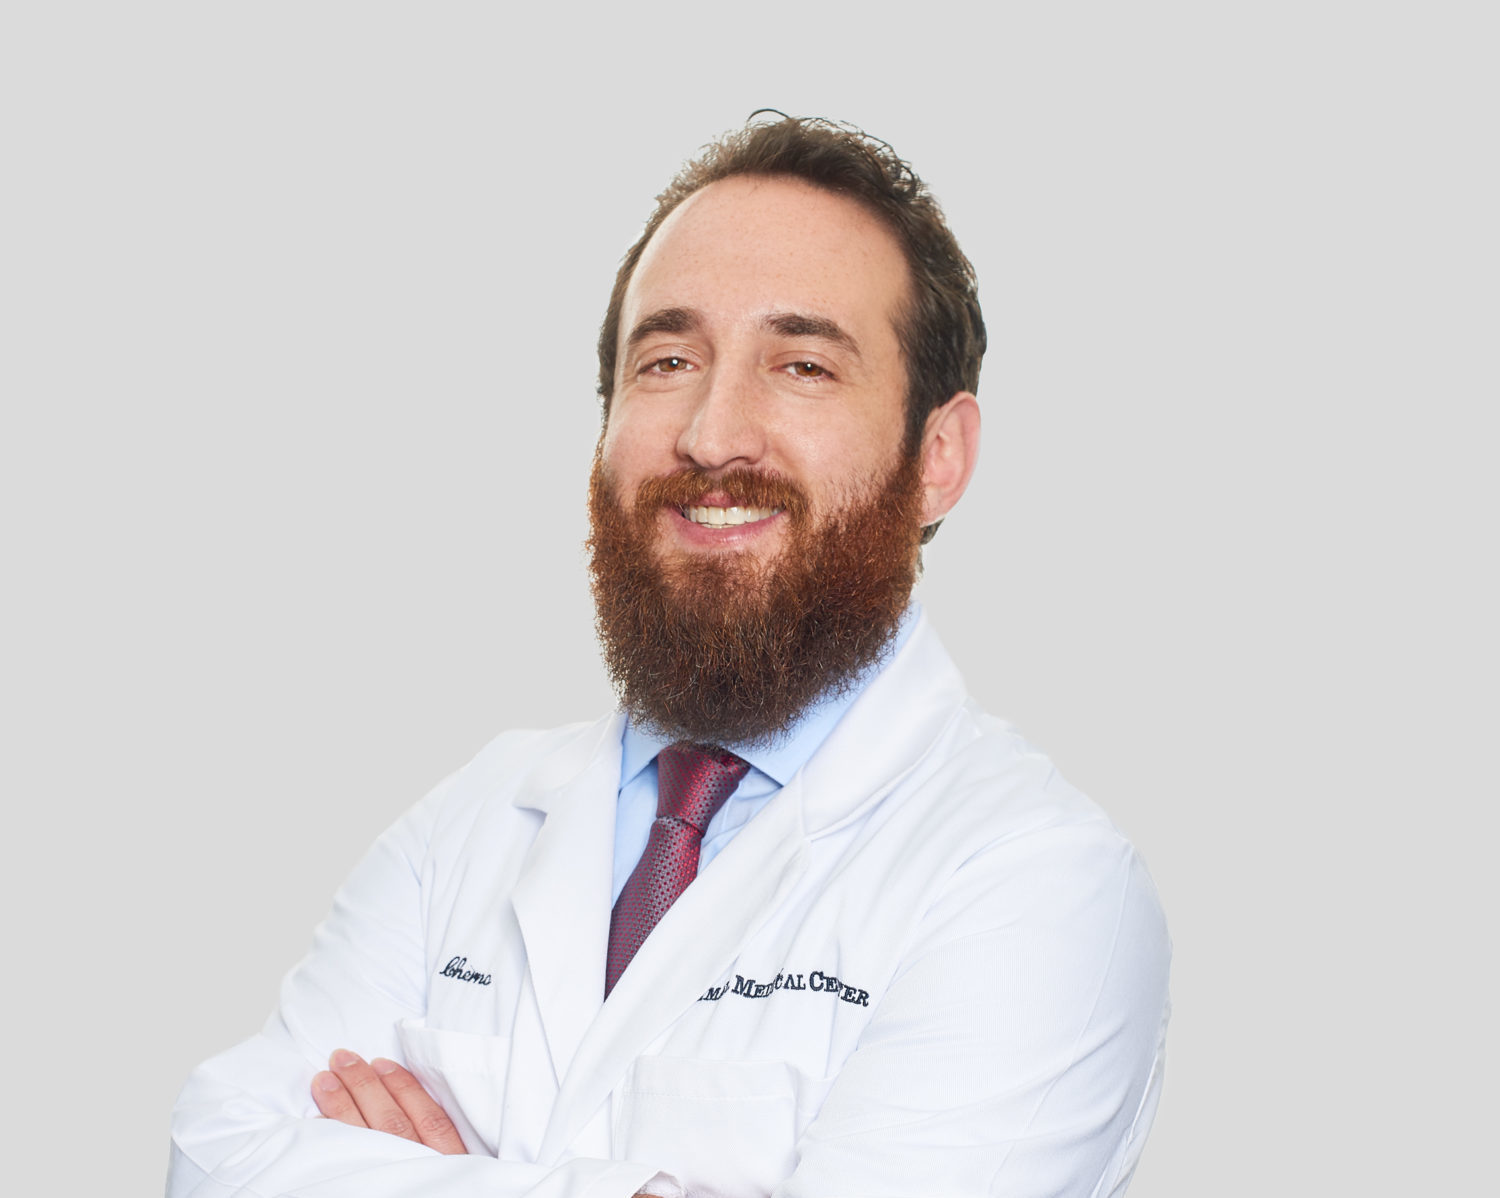 Dr. Barry Cherno of the Animal Medical Center in New York City